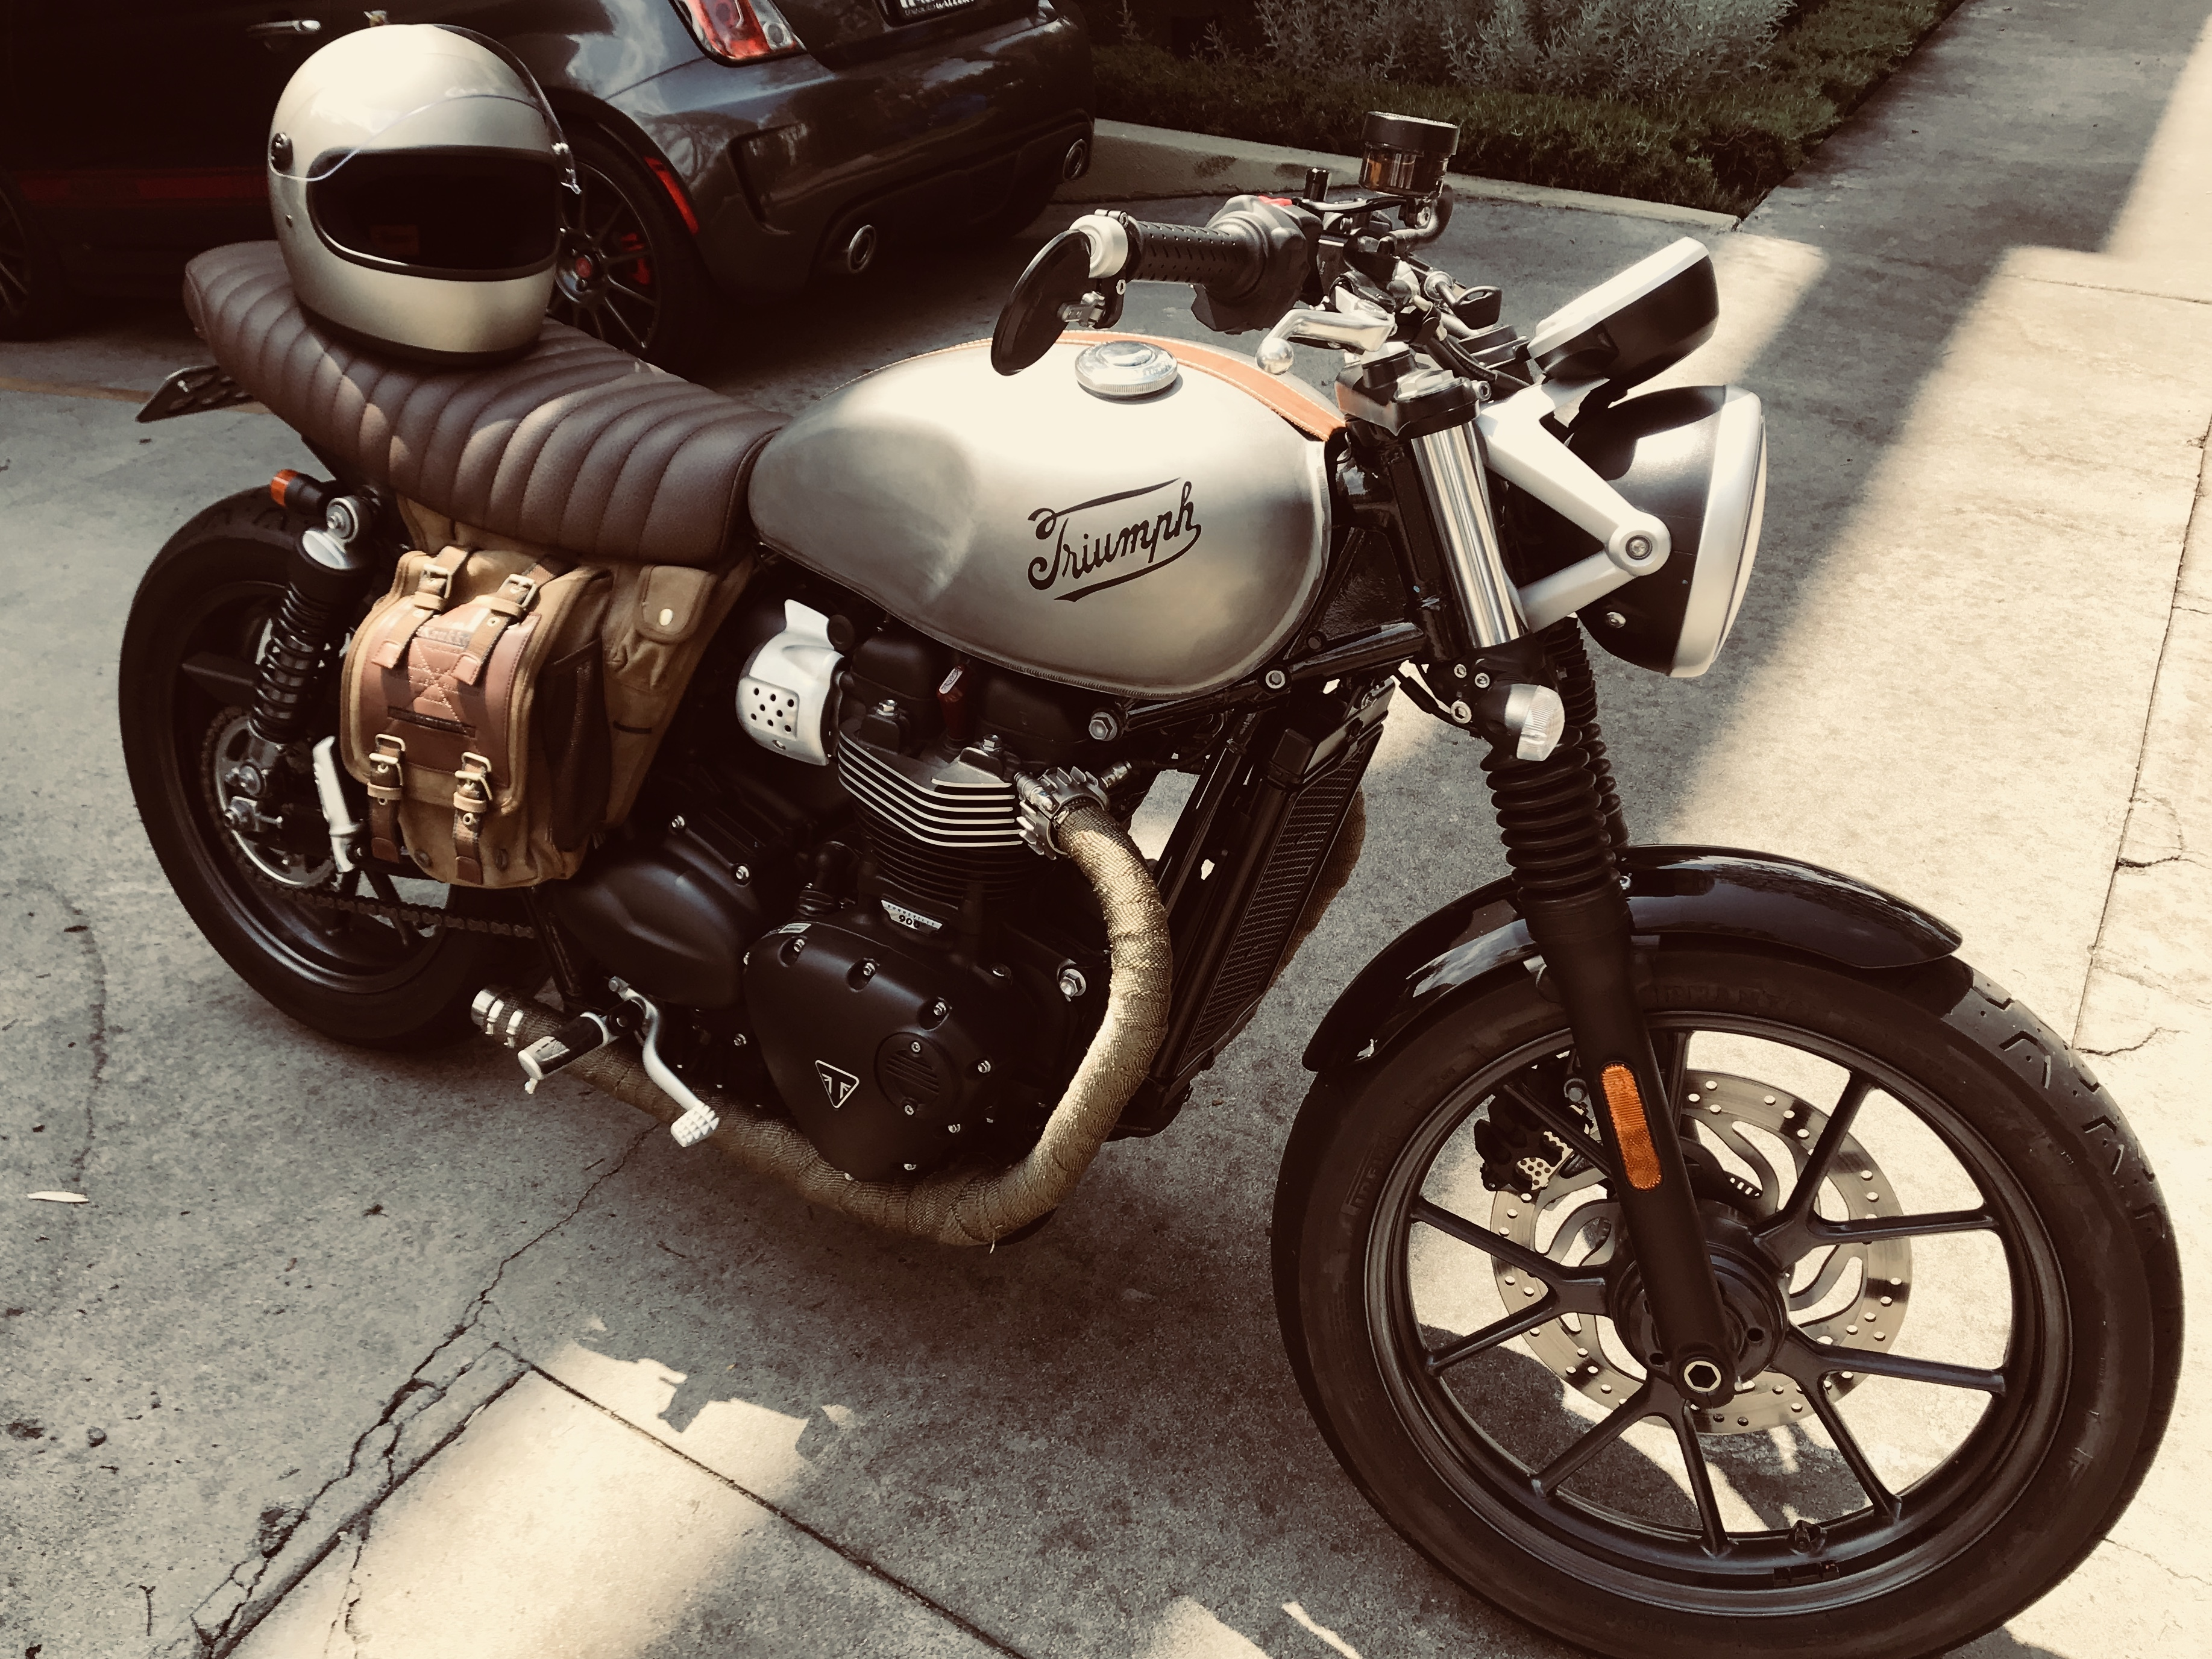 Drag Bars / Aftermarket Handlebars For St | The Triumph Forum